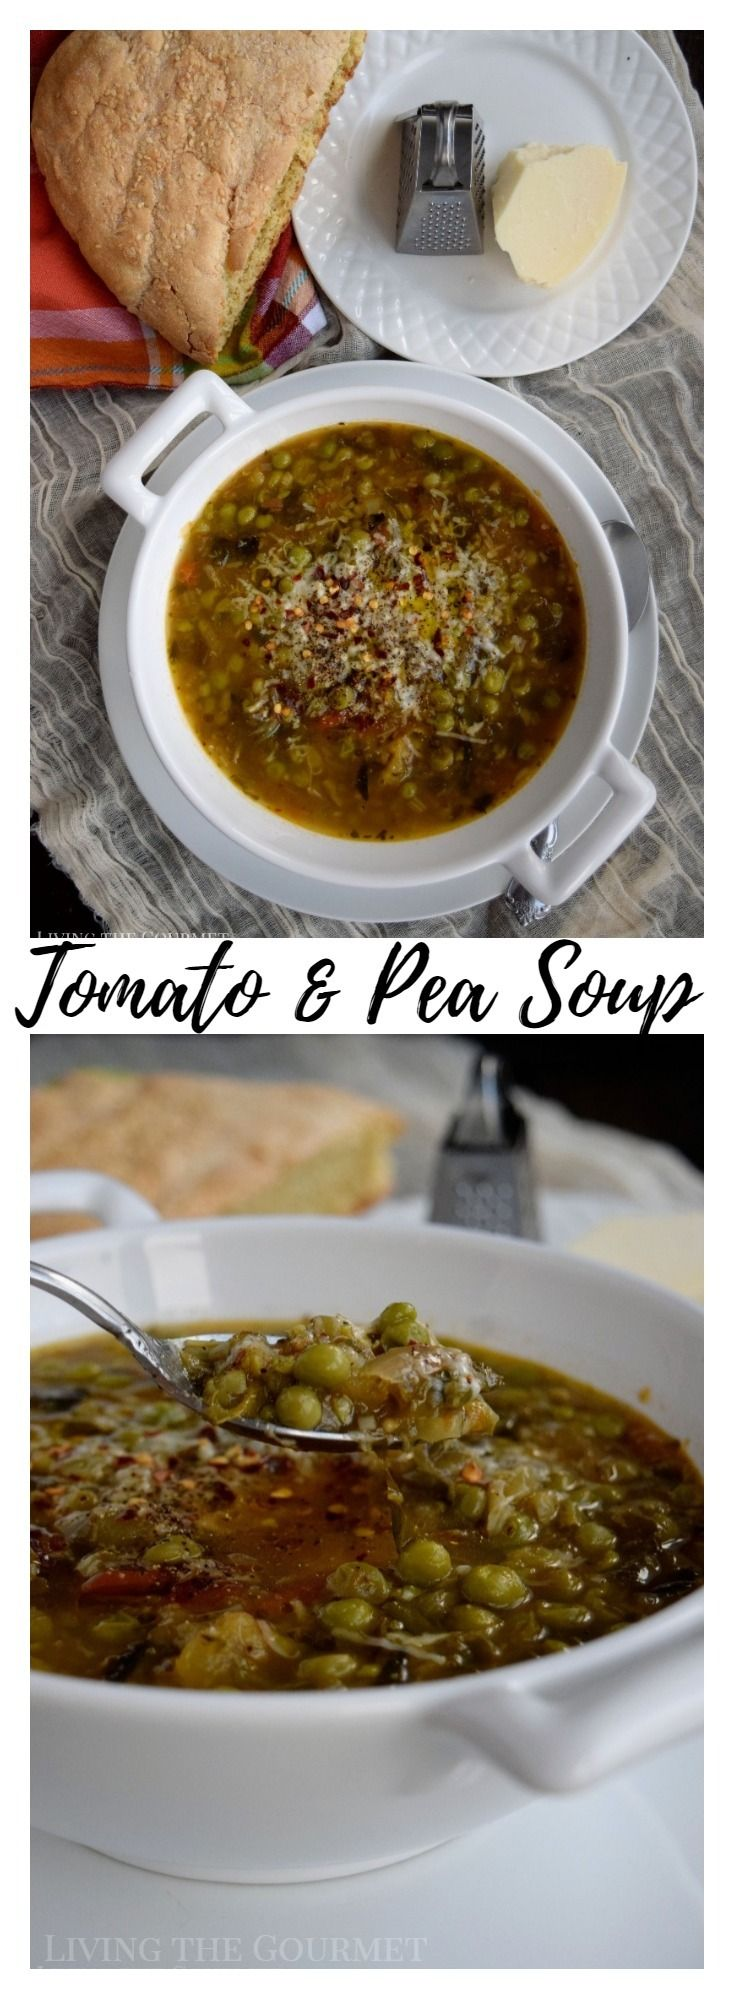 Warm up these bitter winter days with a bowl of this comforting Tomato and Pea soup! Like many of you, I started this year off with a handful of well-intentioned 'Resolutions' aimed at self-perfection, both personal and professional. Now, I'm about to embark upon a self-deprecating tangent on how I've already broken my waist-line orientated...